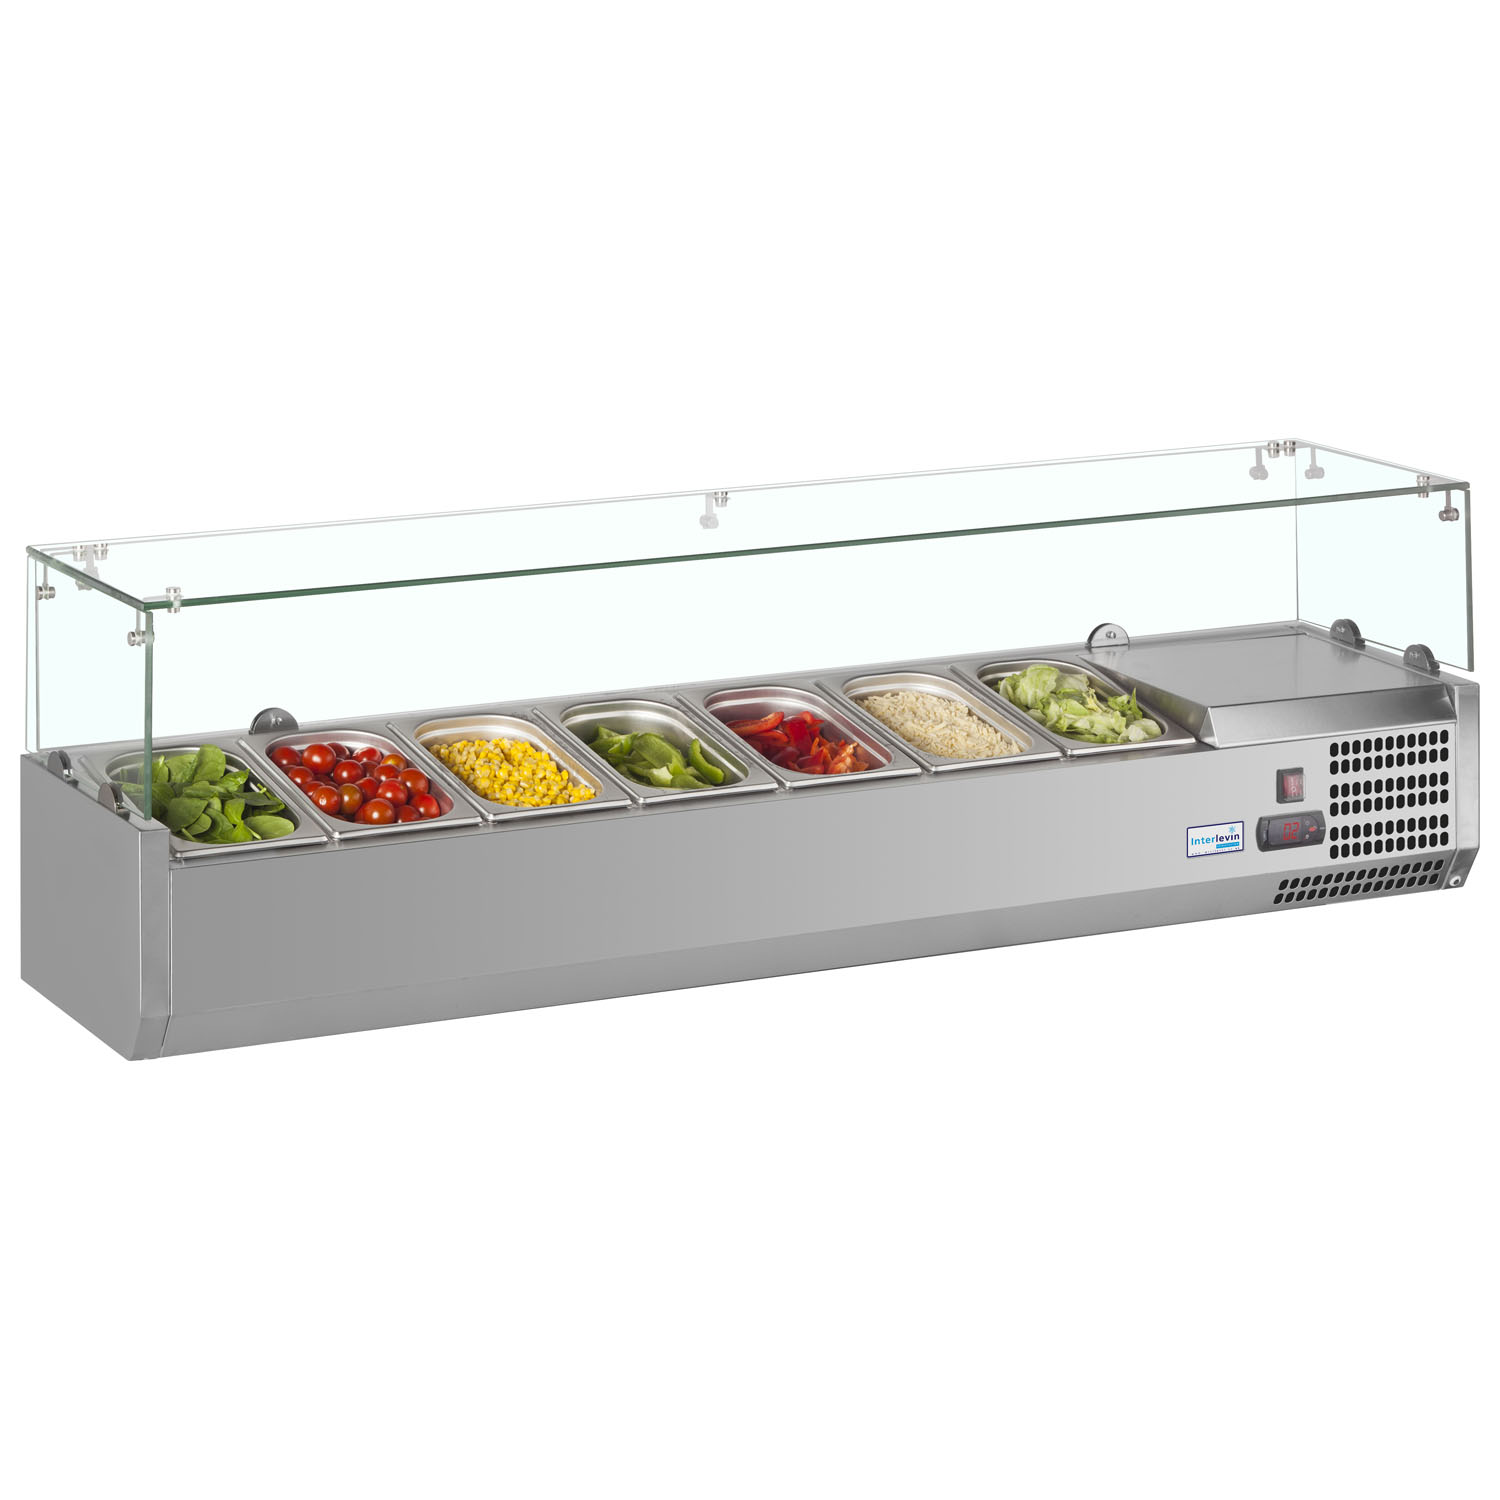 Interlevin VRX1500/330 SS Gastronorm Topping Shelf